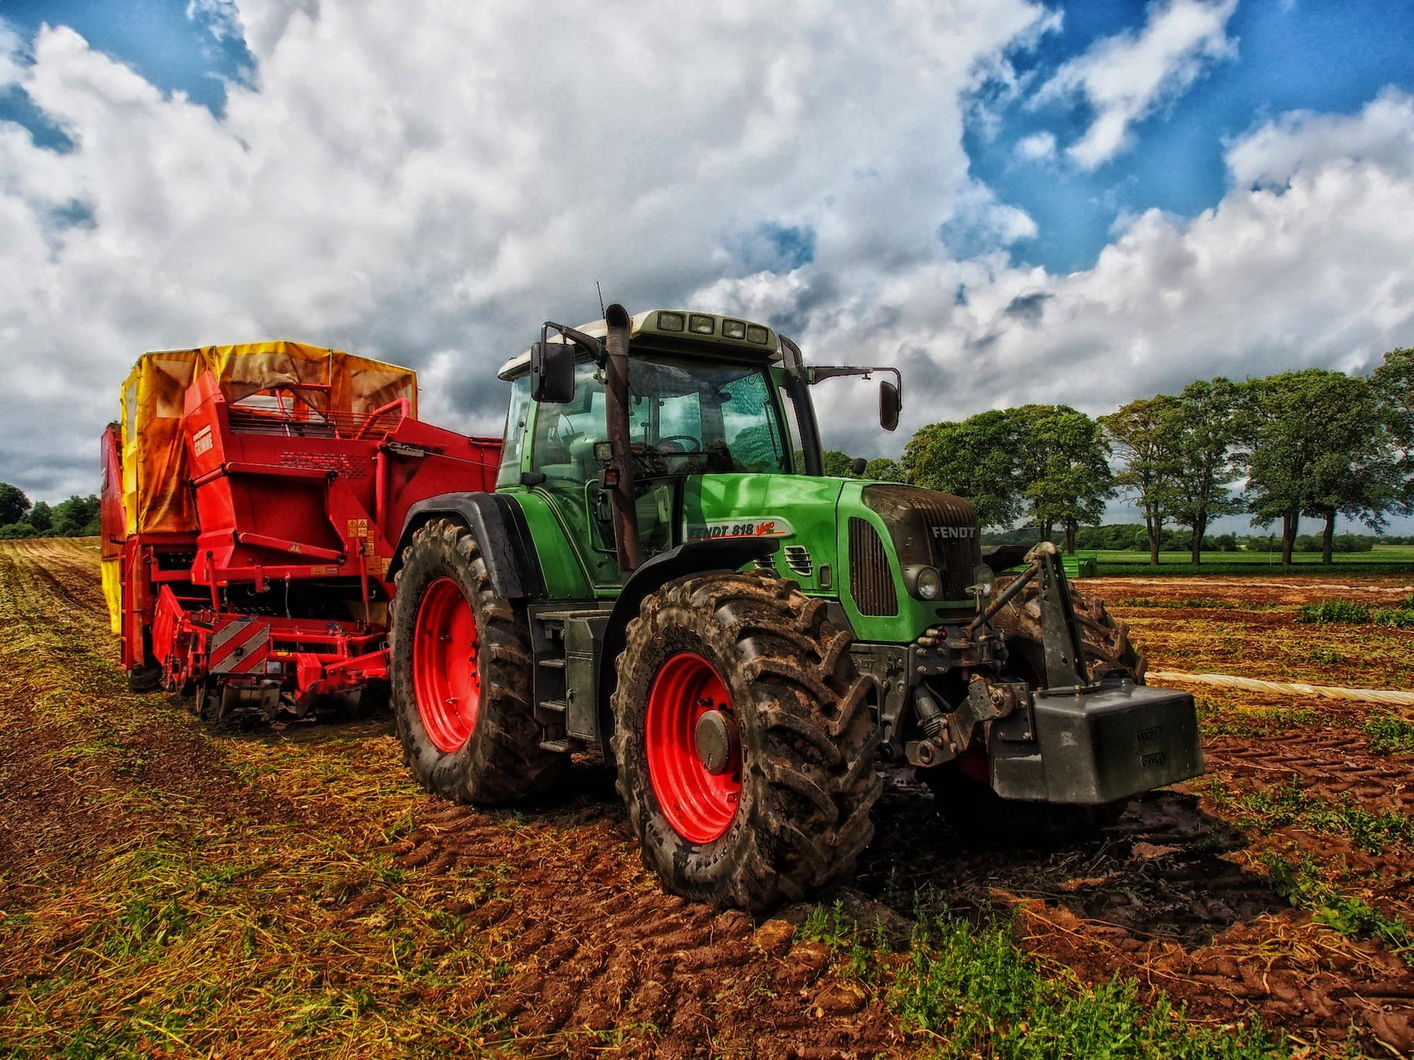 Business For Sale - Buy Business - Agriculture and Gardening